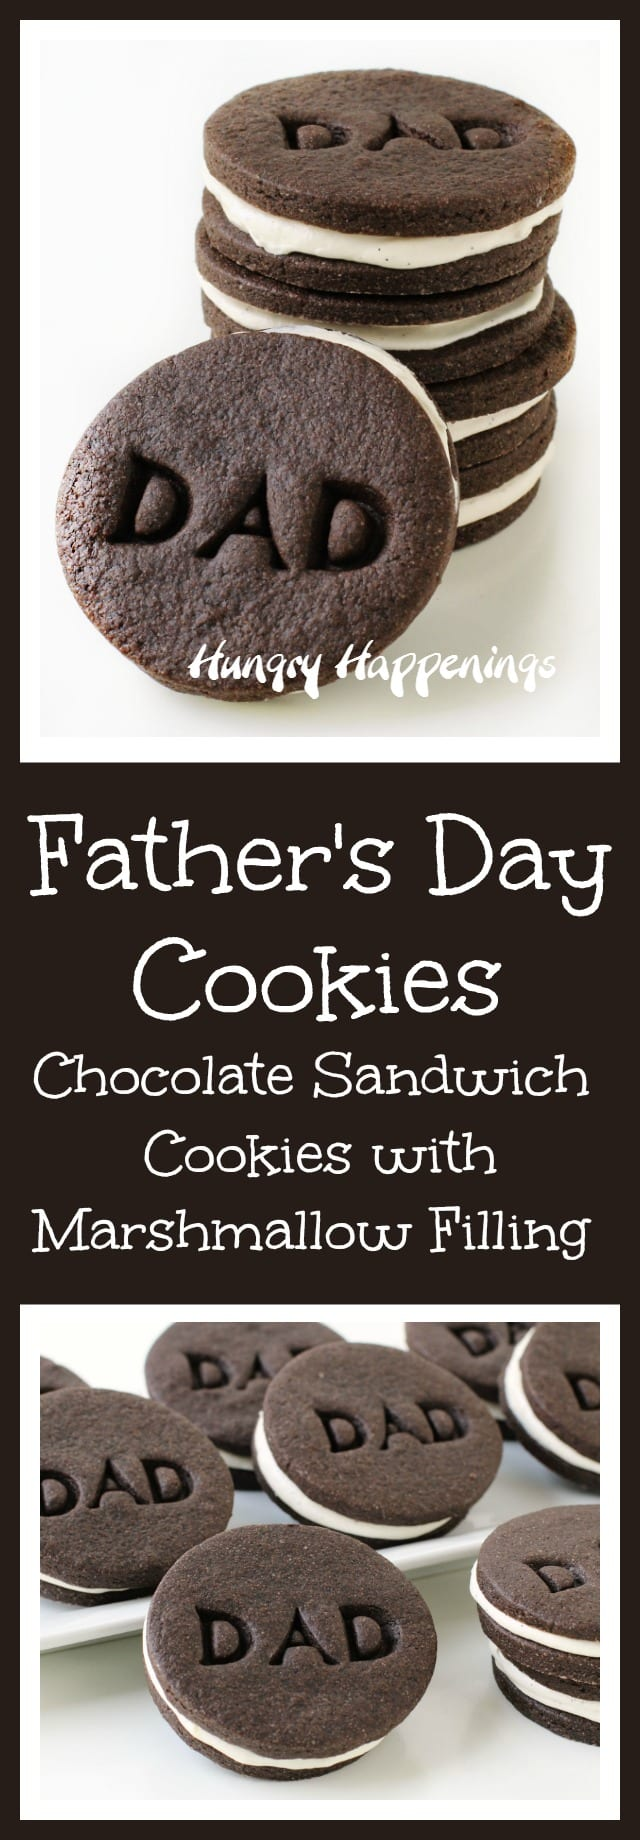 Surprise your dad this Father's Day by making him a batch of homemade chocolate sandwich cookies filled with marshmallow cream and imprinted with